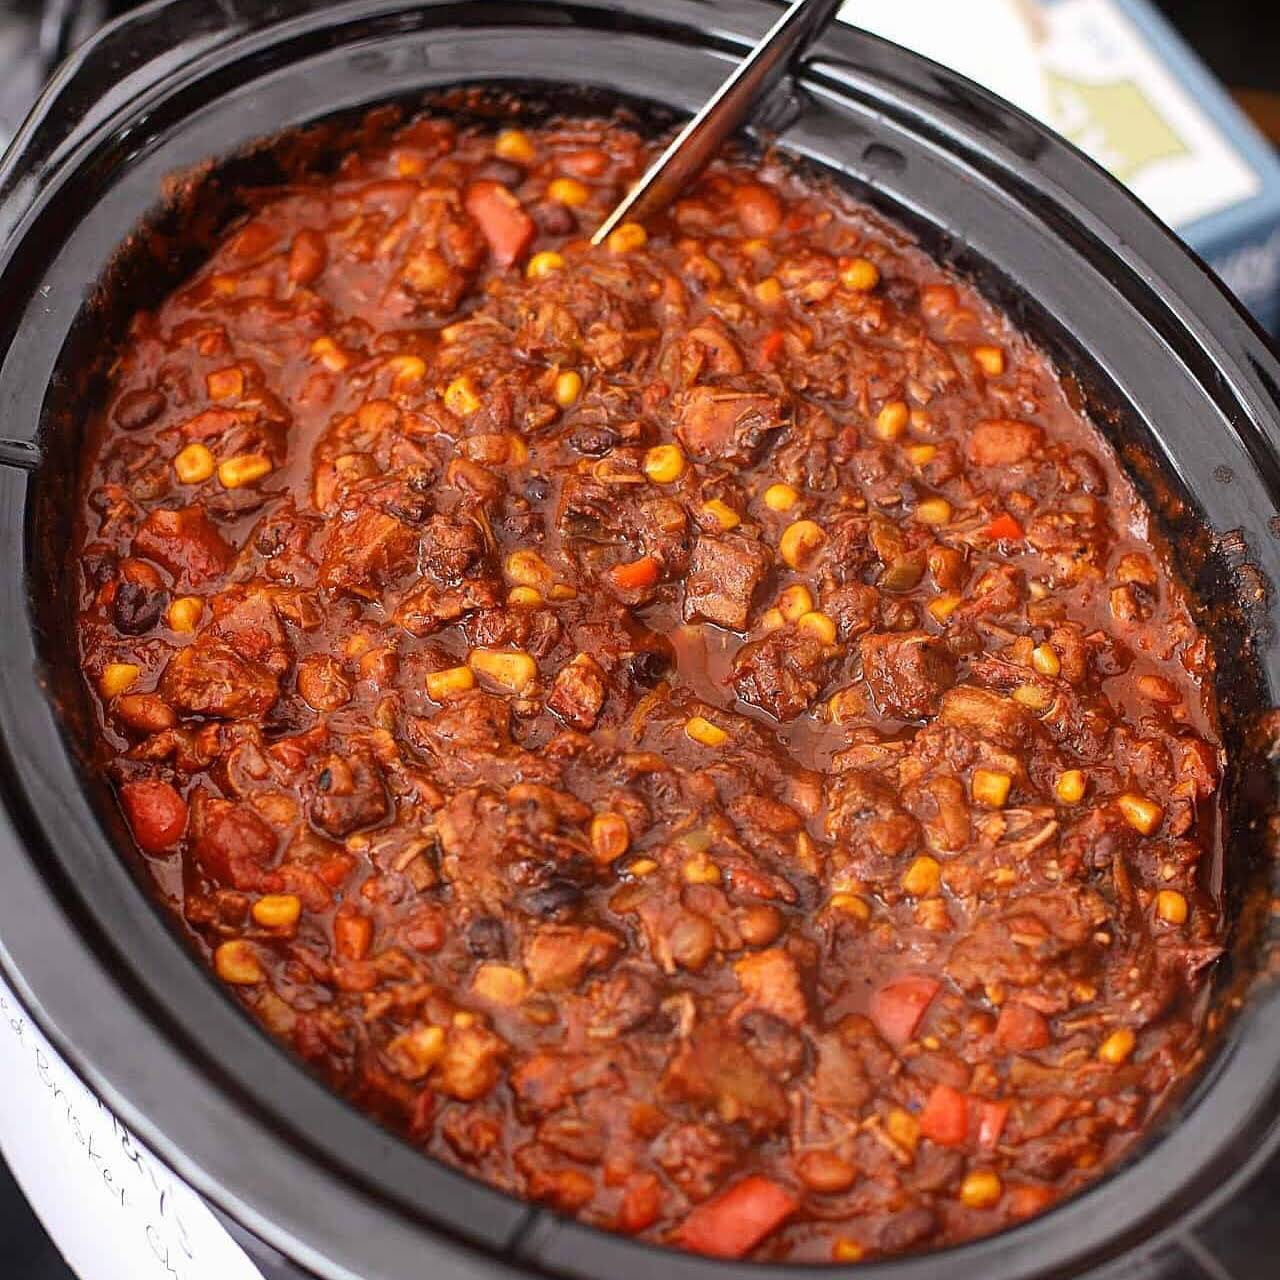 10 Best Beer And Coffee Chili Recipes Yummly